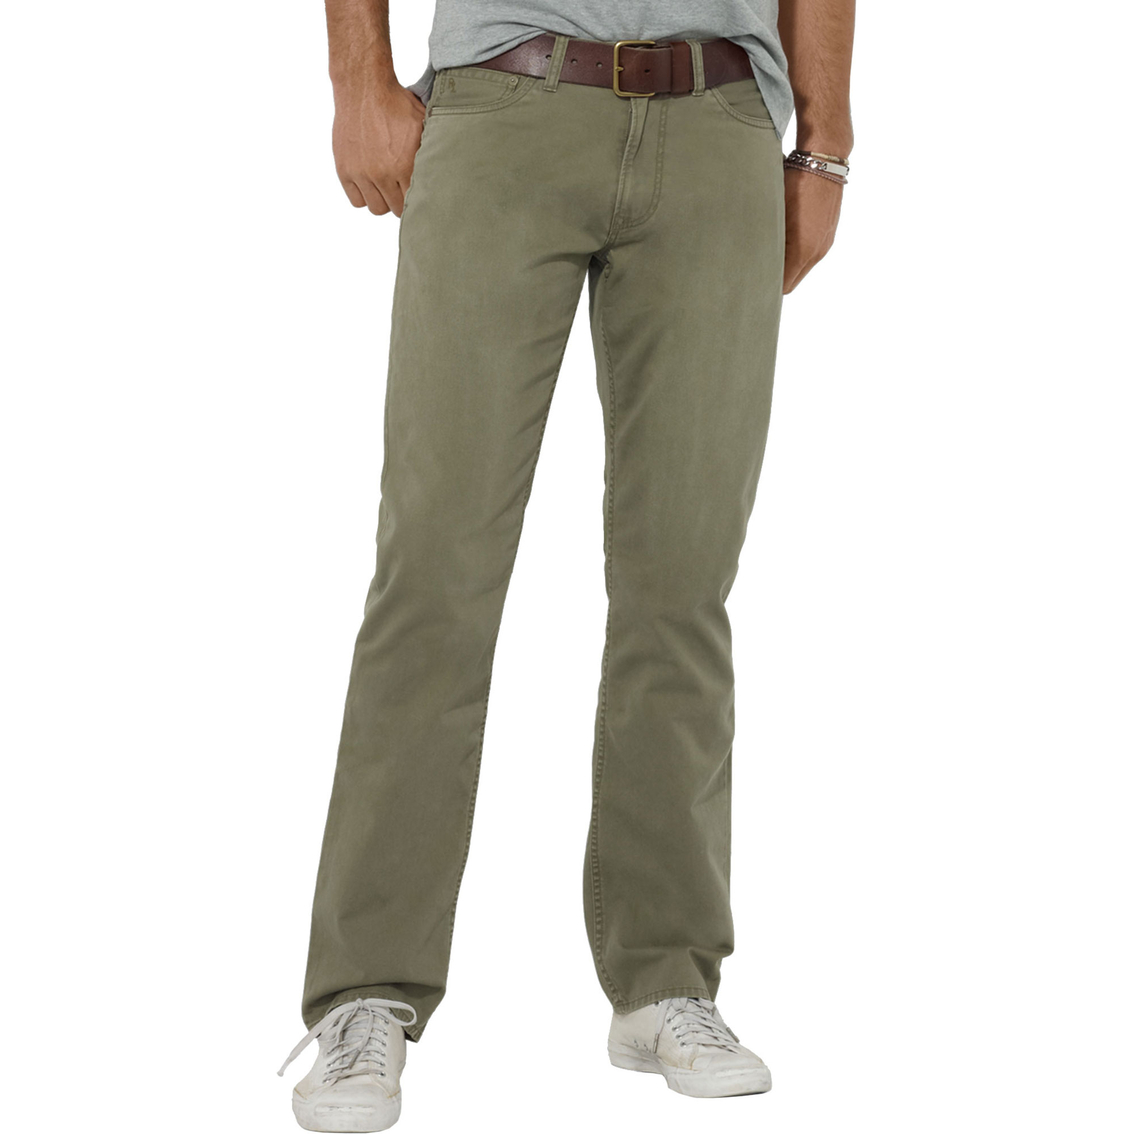 01d2e05a8d Polo Ralph Lauren Straight Fit 5 Pocket Chino Pants | Polo Ralph ...